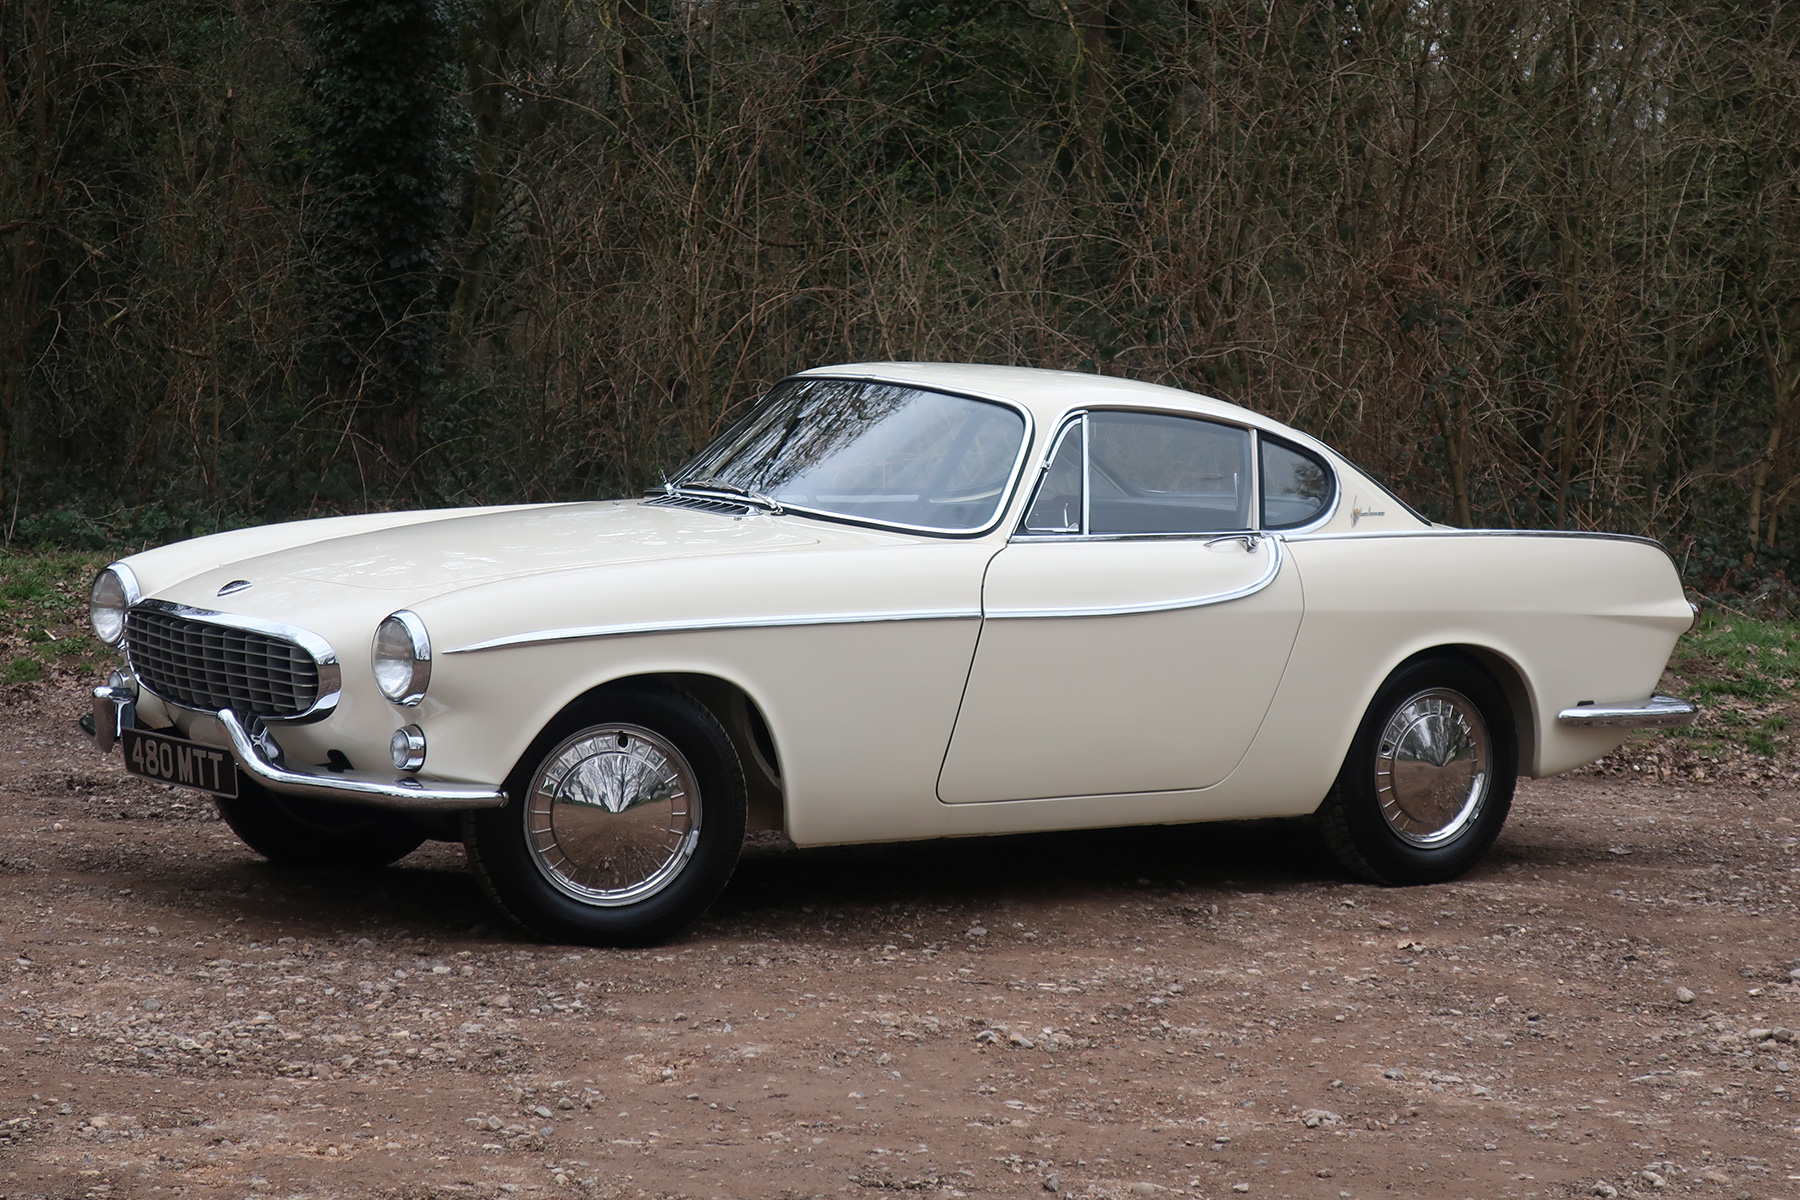 Volvo P1800 review: driving the best looking Volvo ever